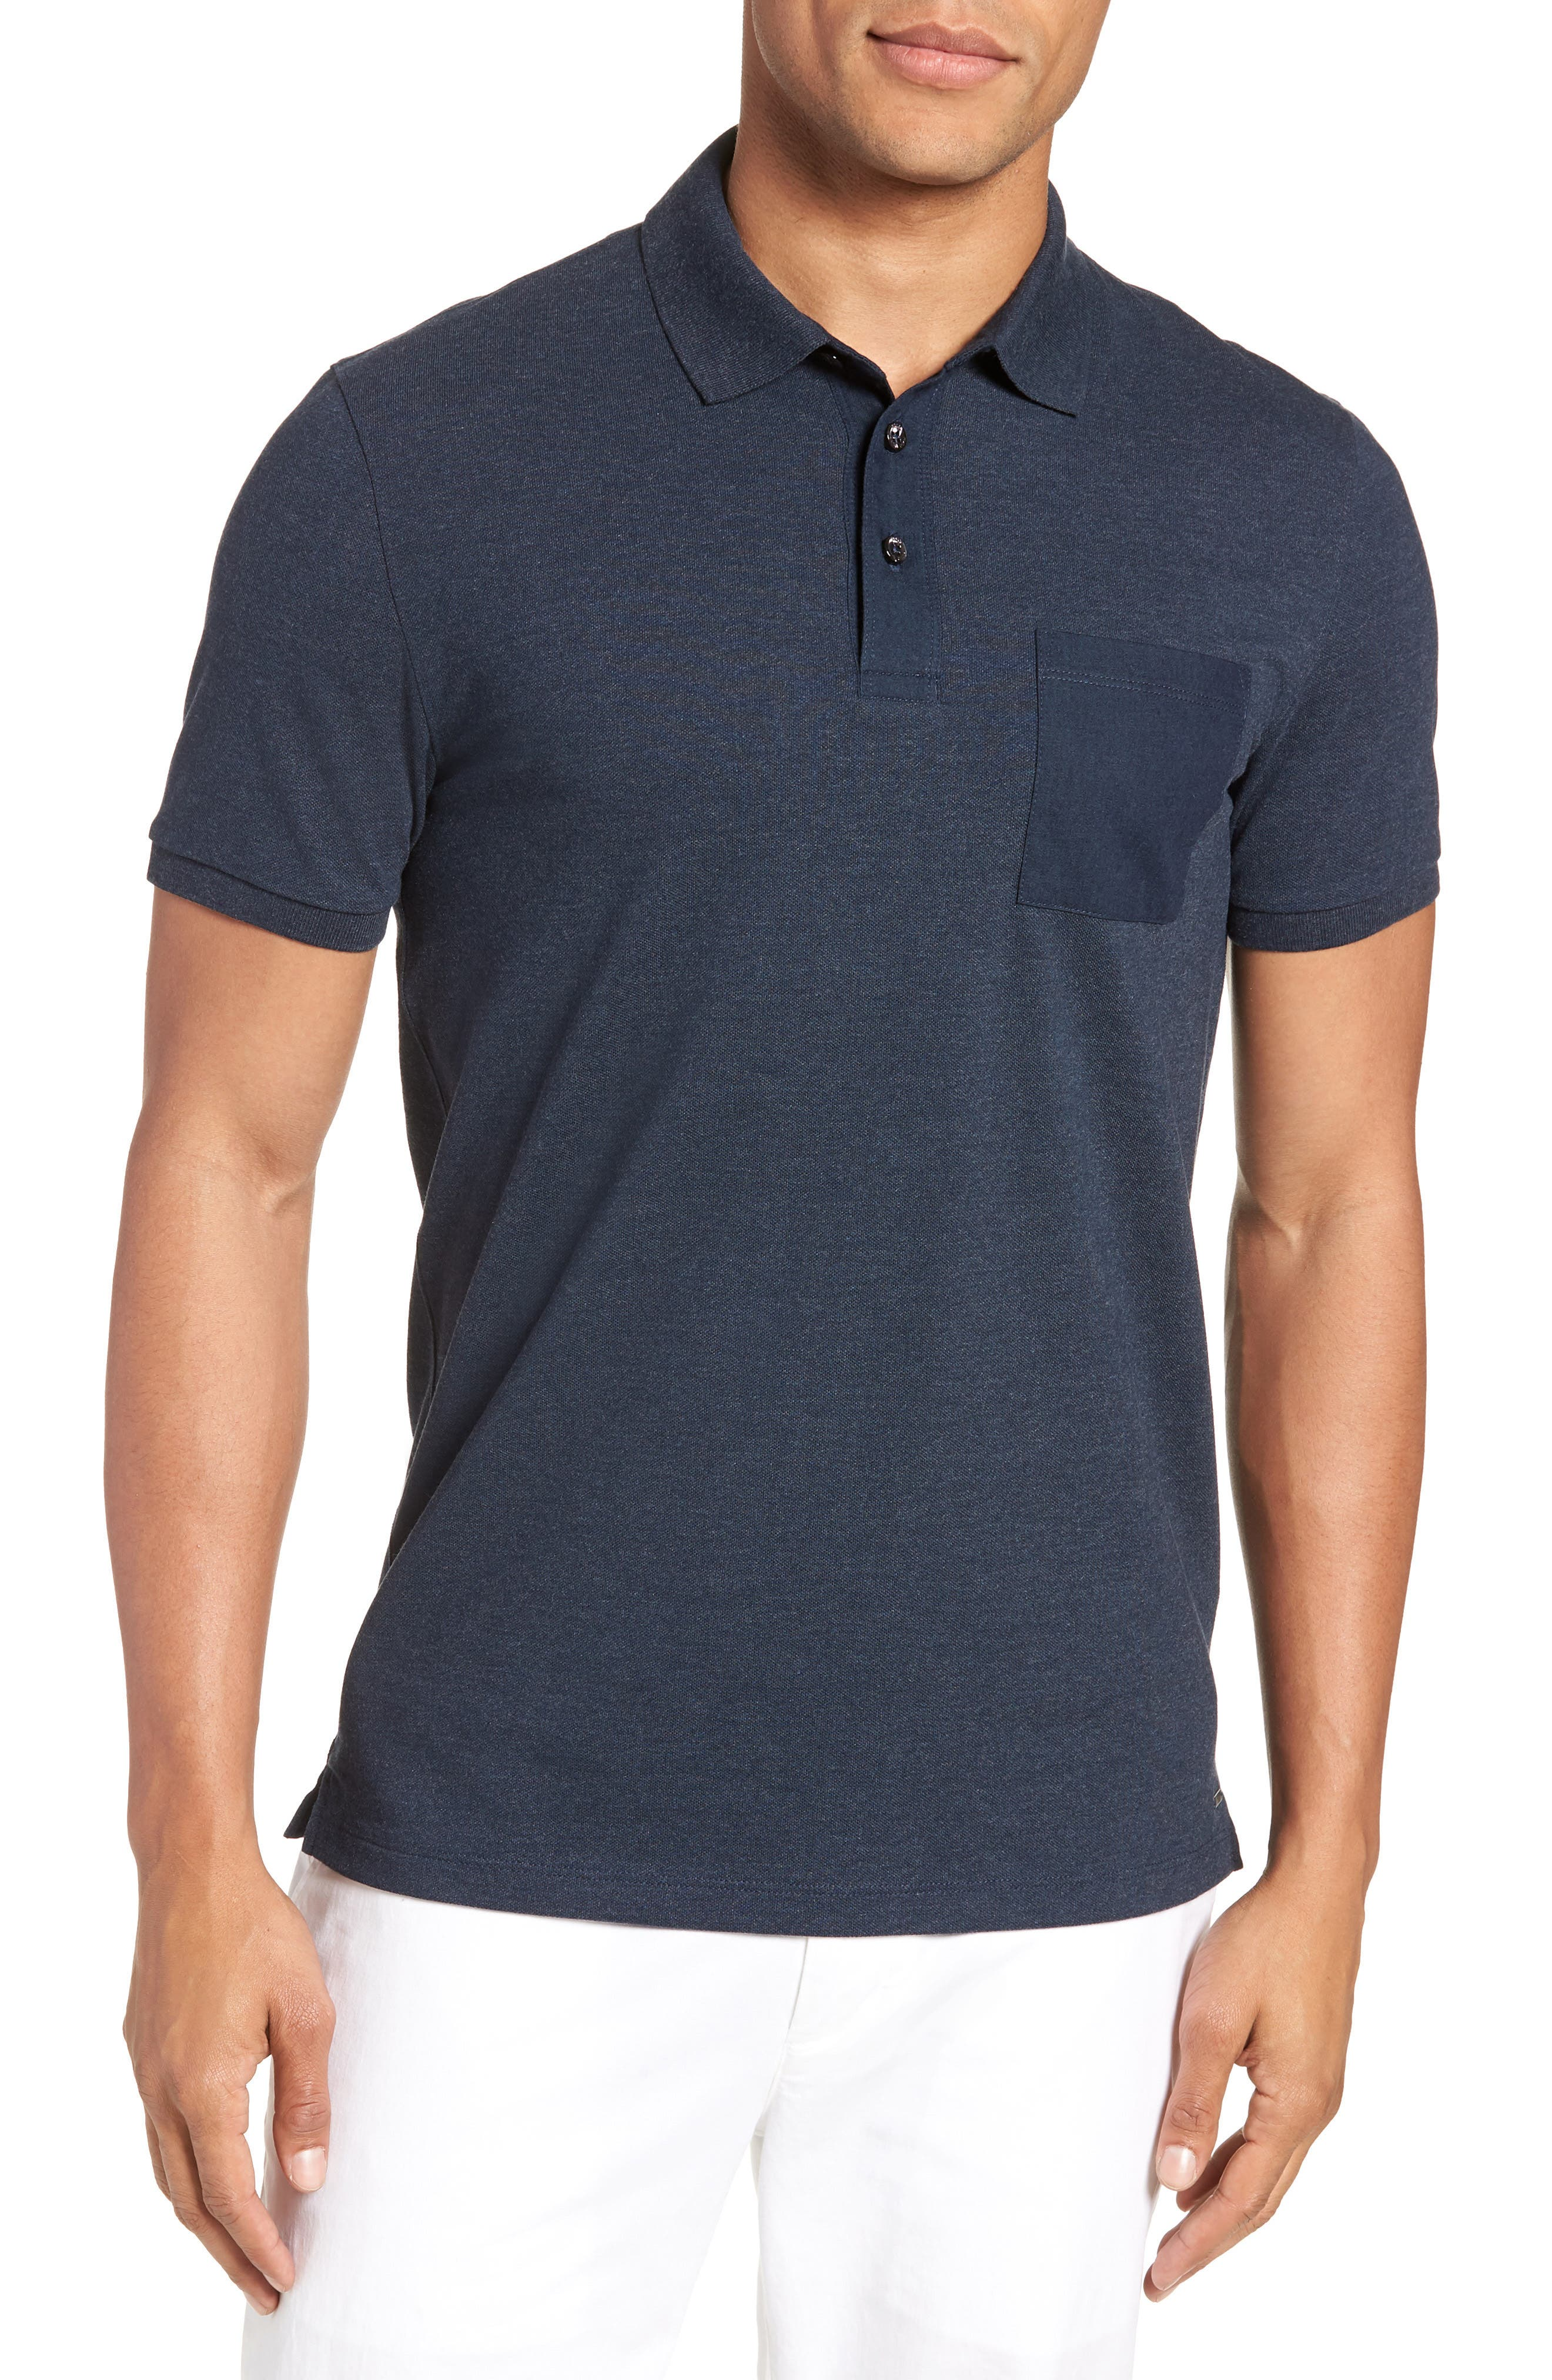 Penrose Polo Shirt,                             Main thumbnail 1, color,                             410